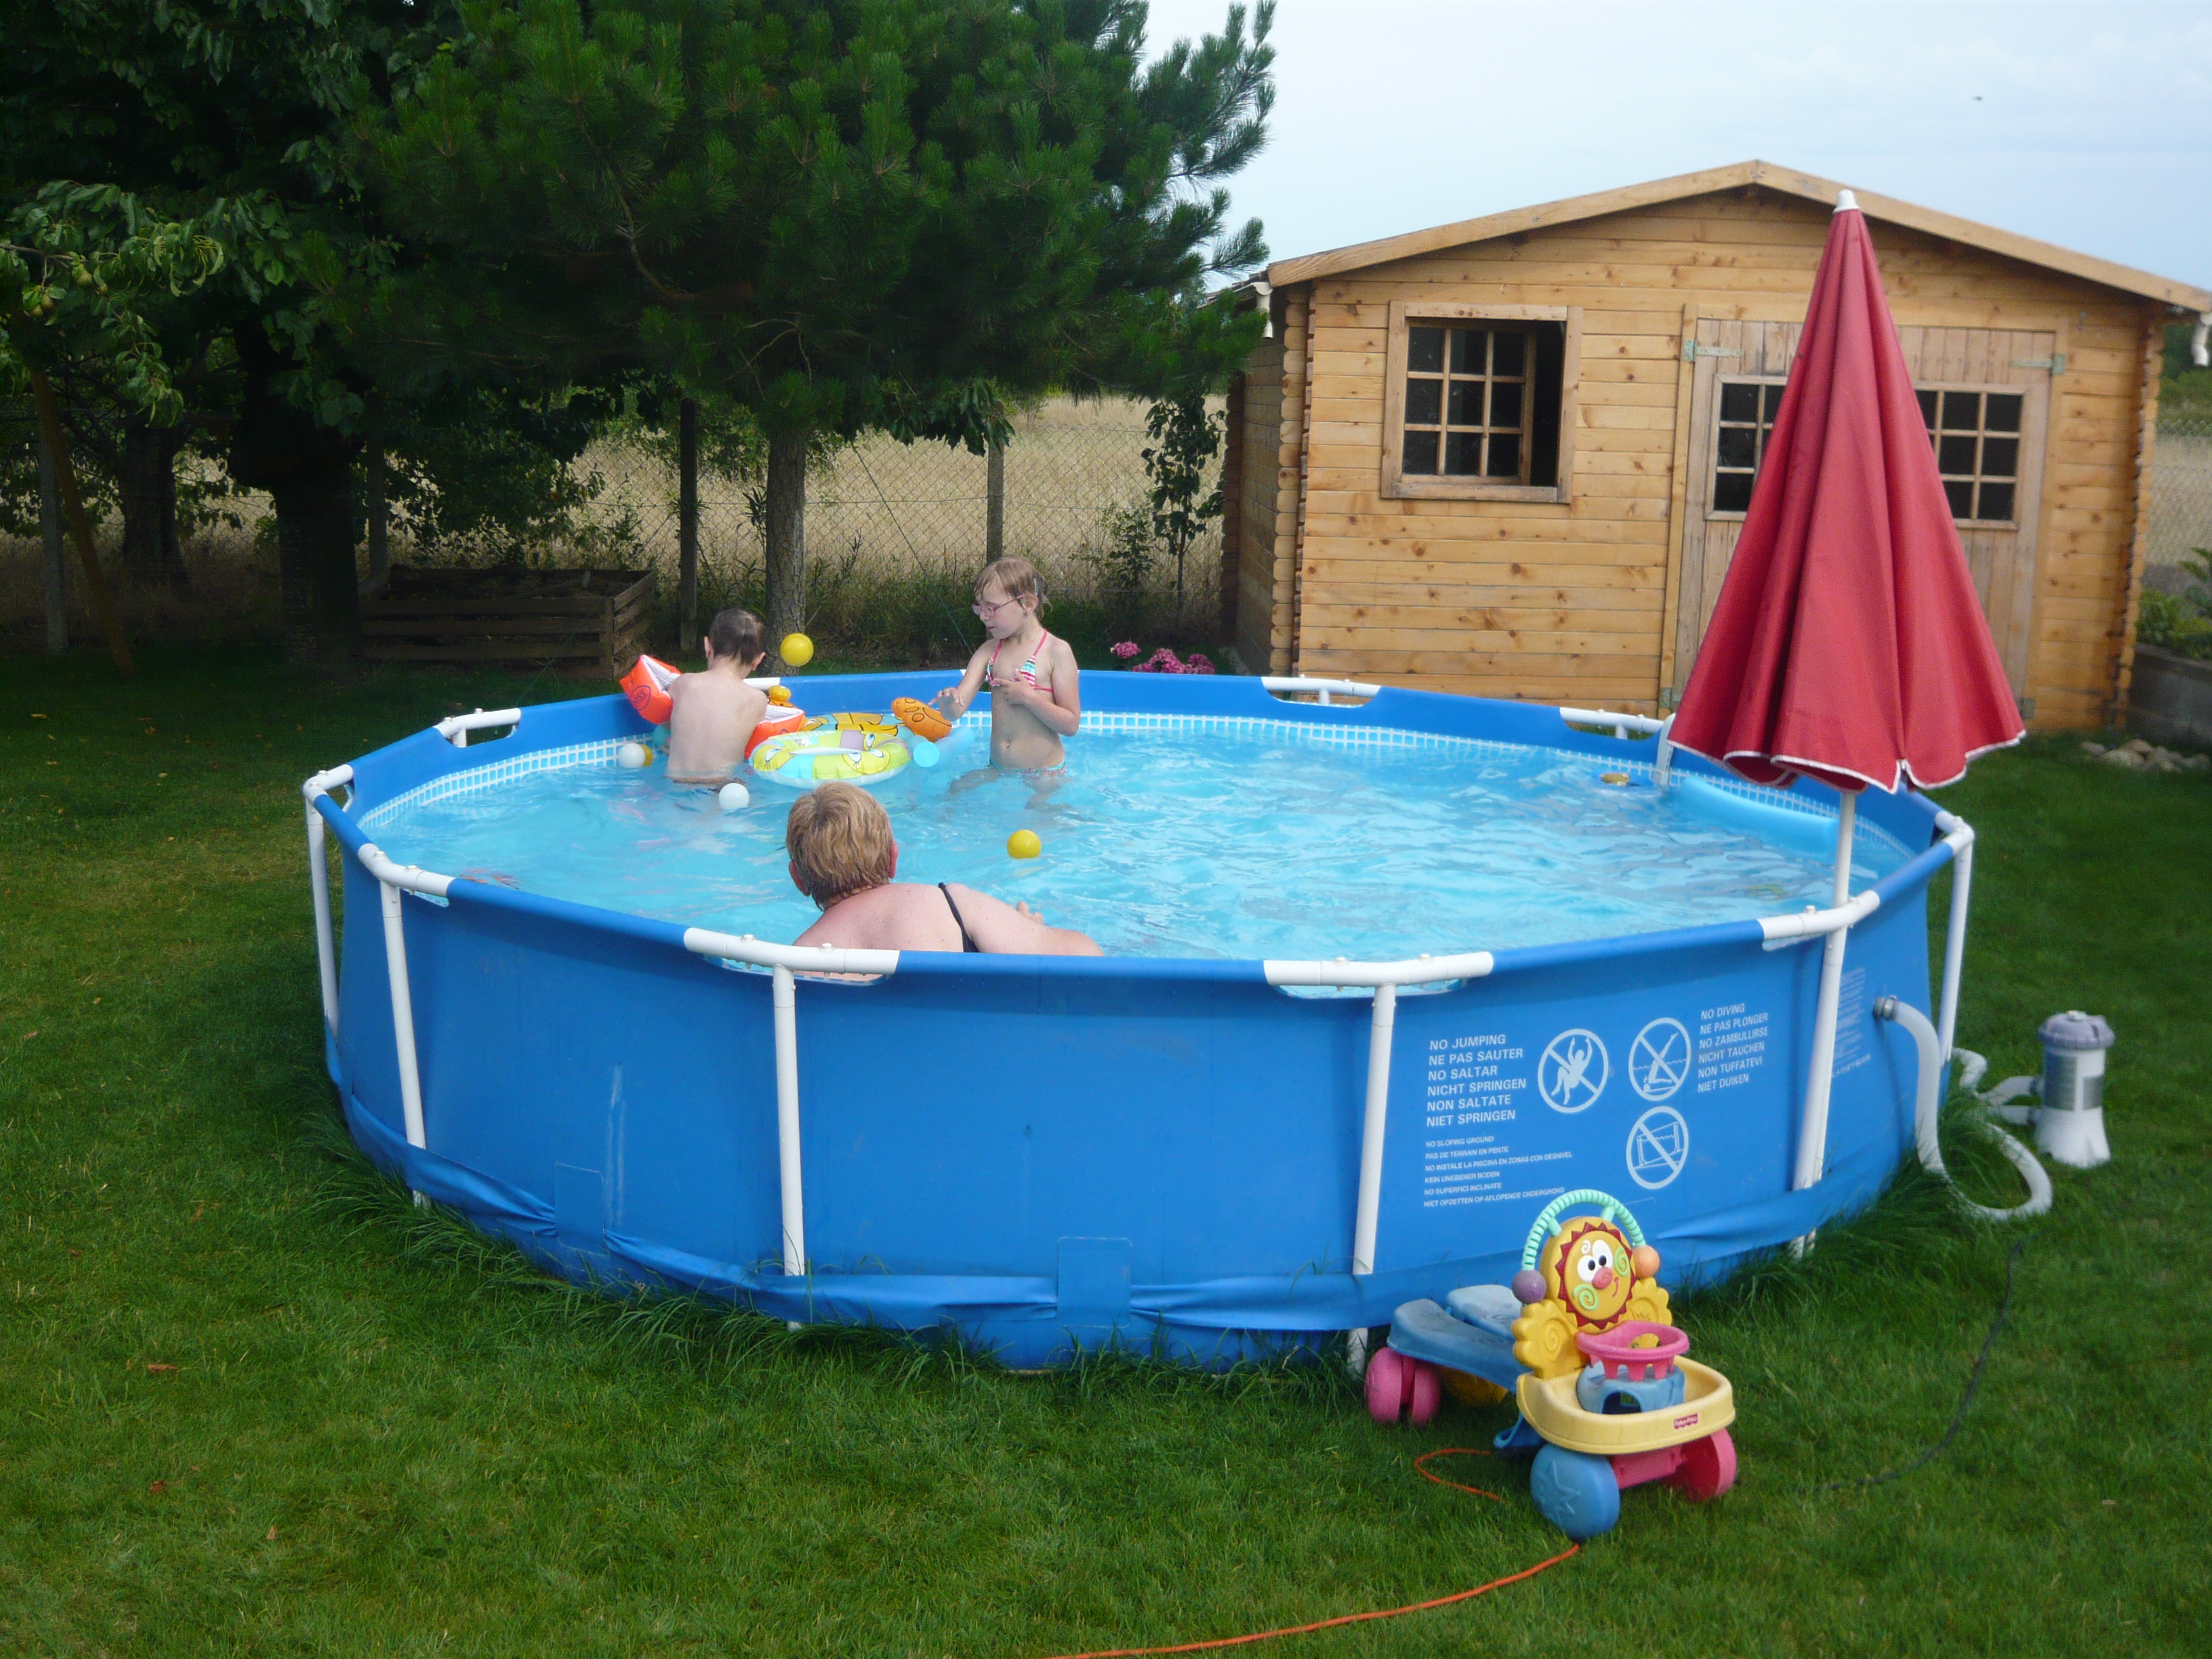 Achat Piscine Intex Piscine Intex Pas Cher